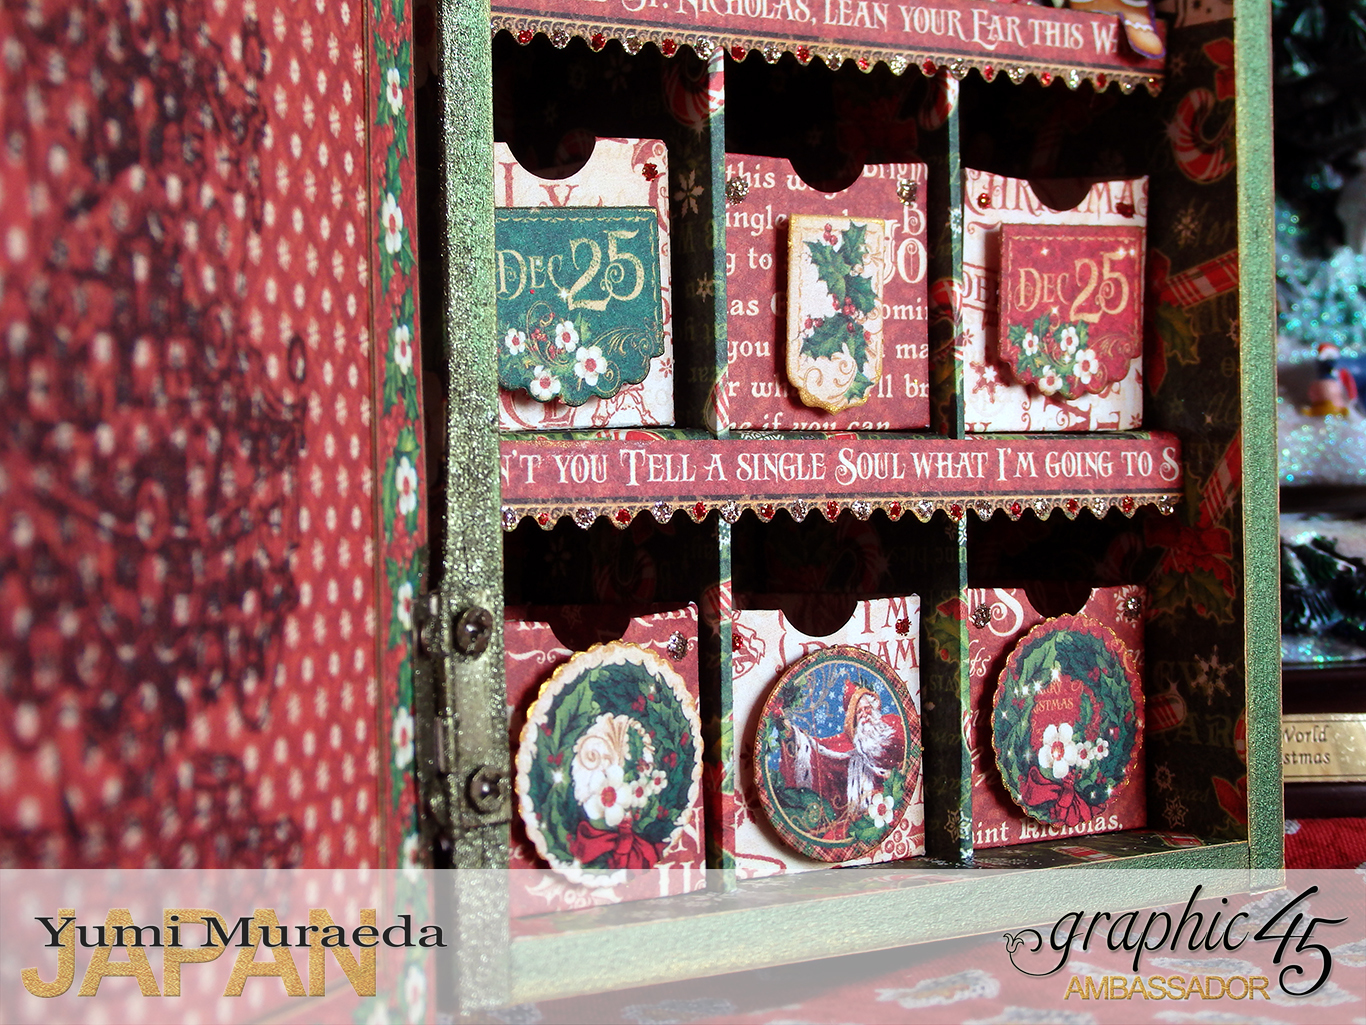 yuyu3xmasboxdesignbyyumimuraedaproductbygraphic45photo10.jpg